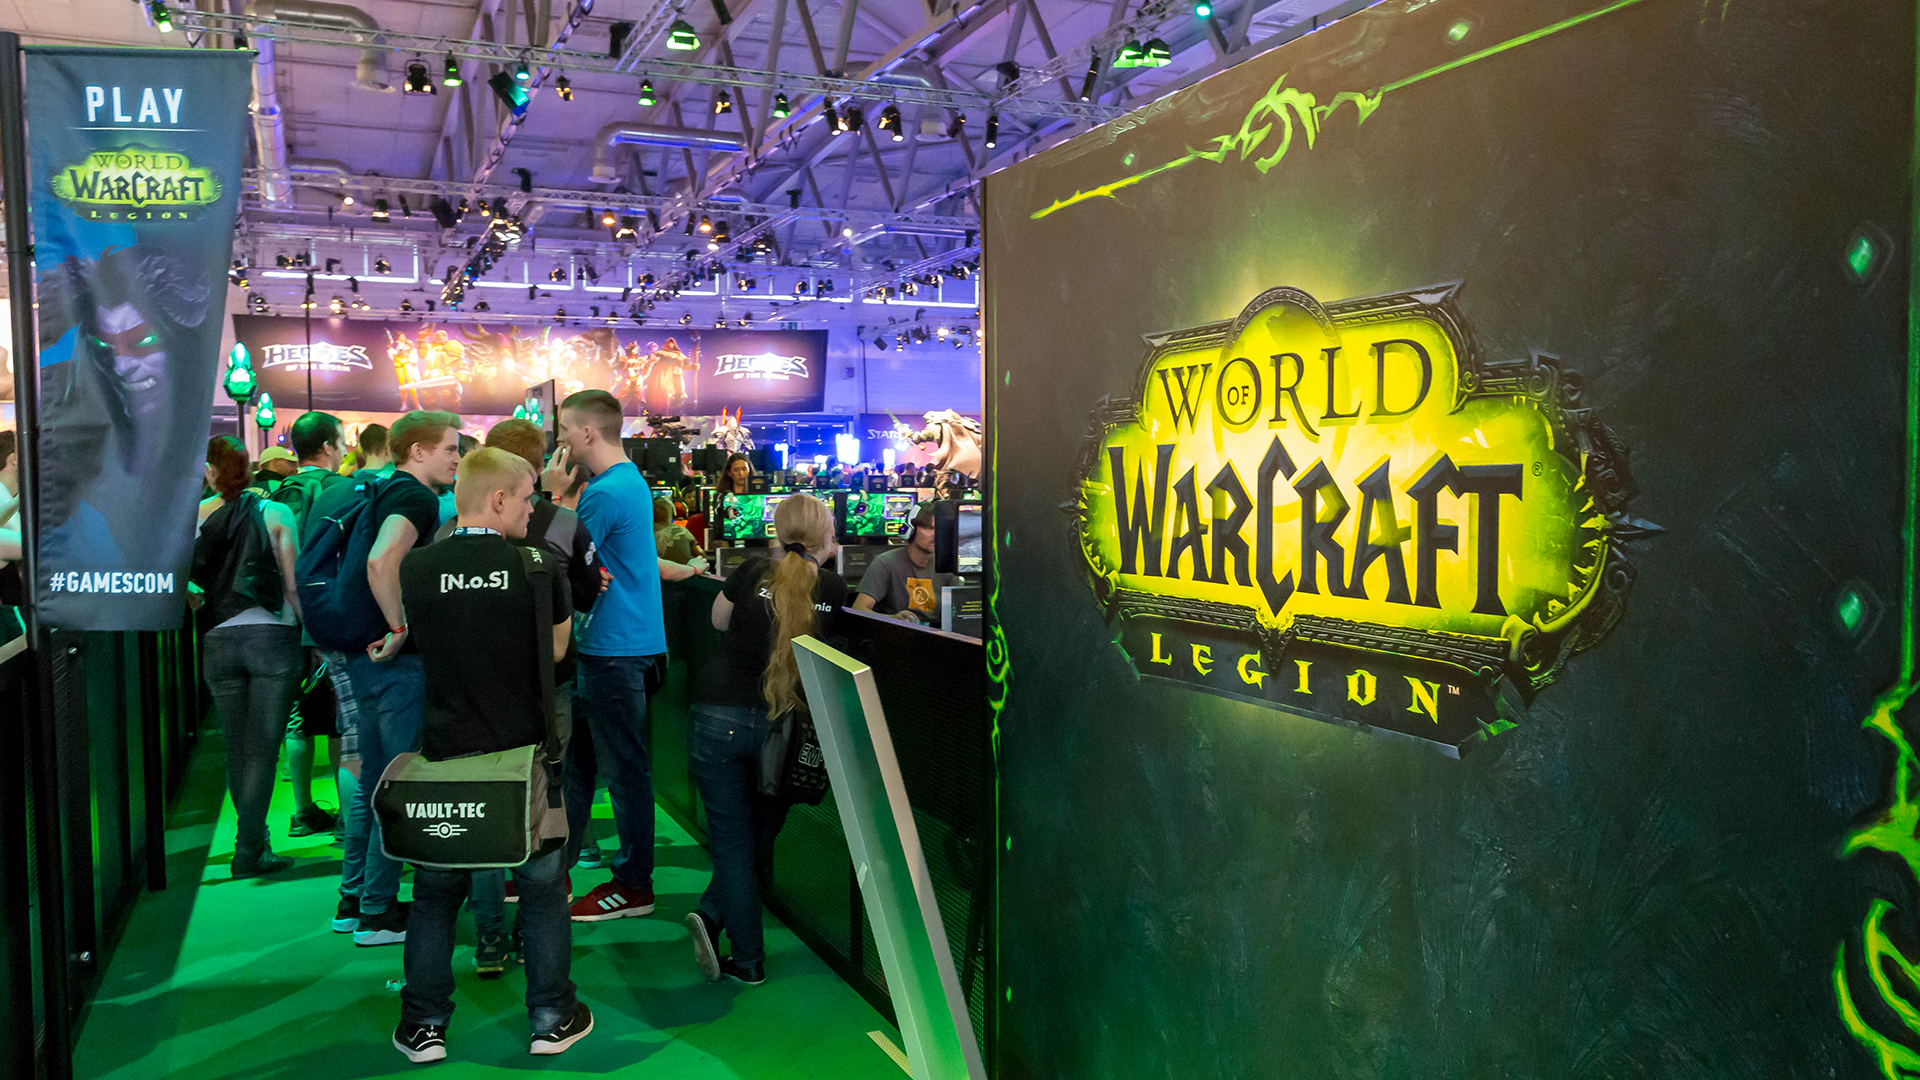 Venezuela's currency now worth less than 'World of Warcraft' gold